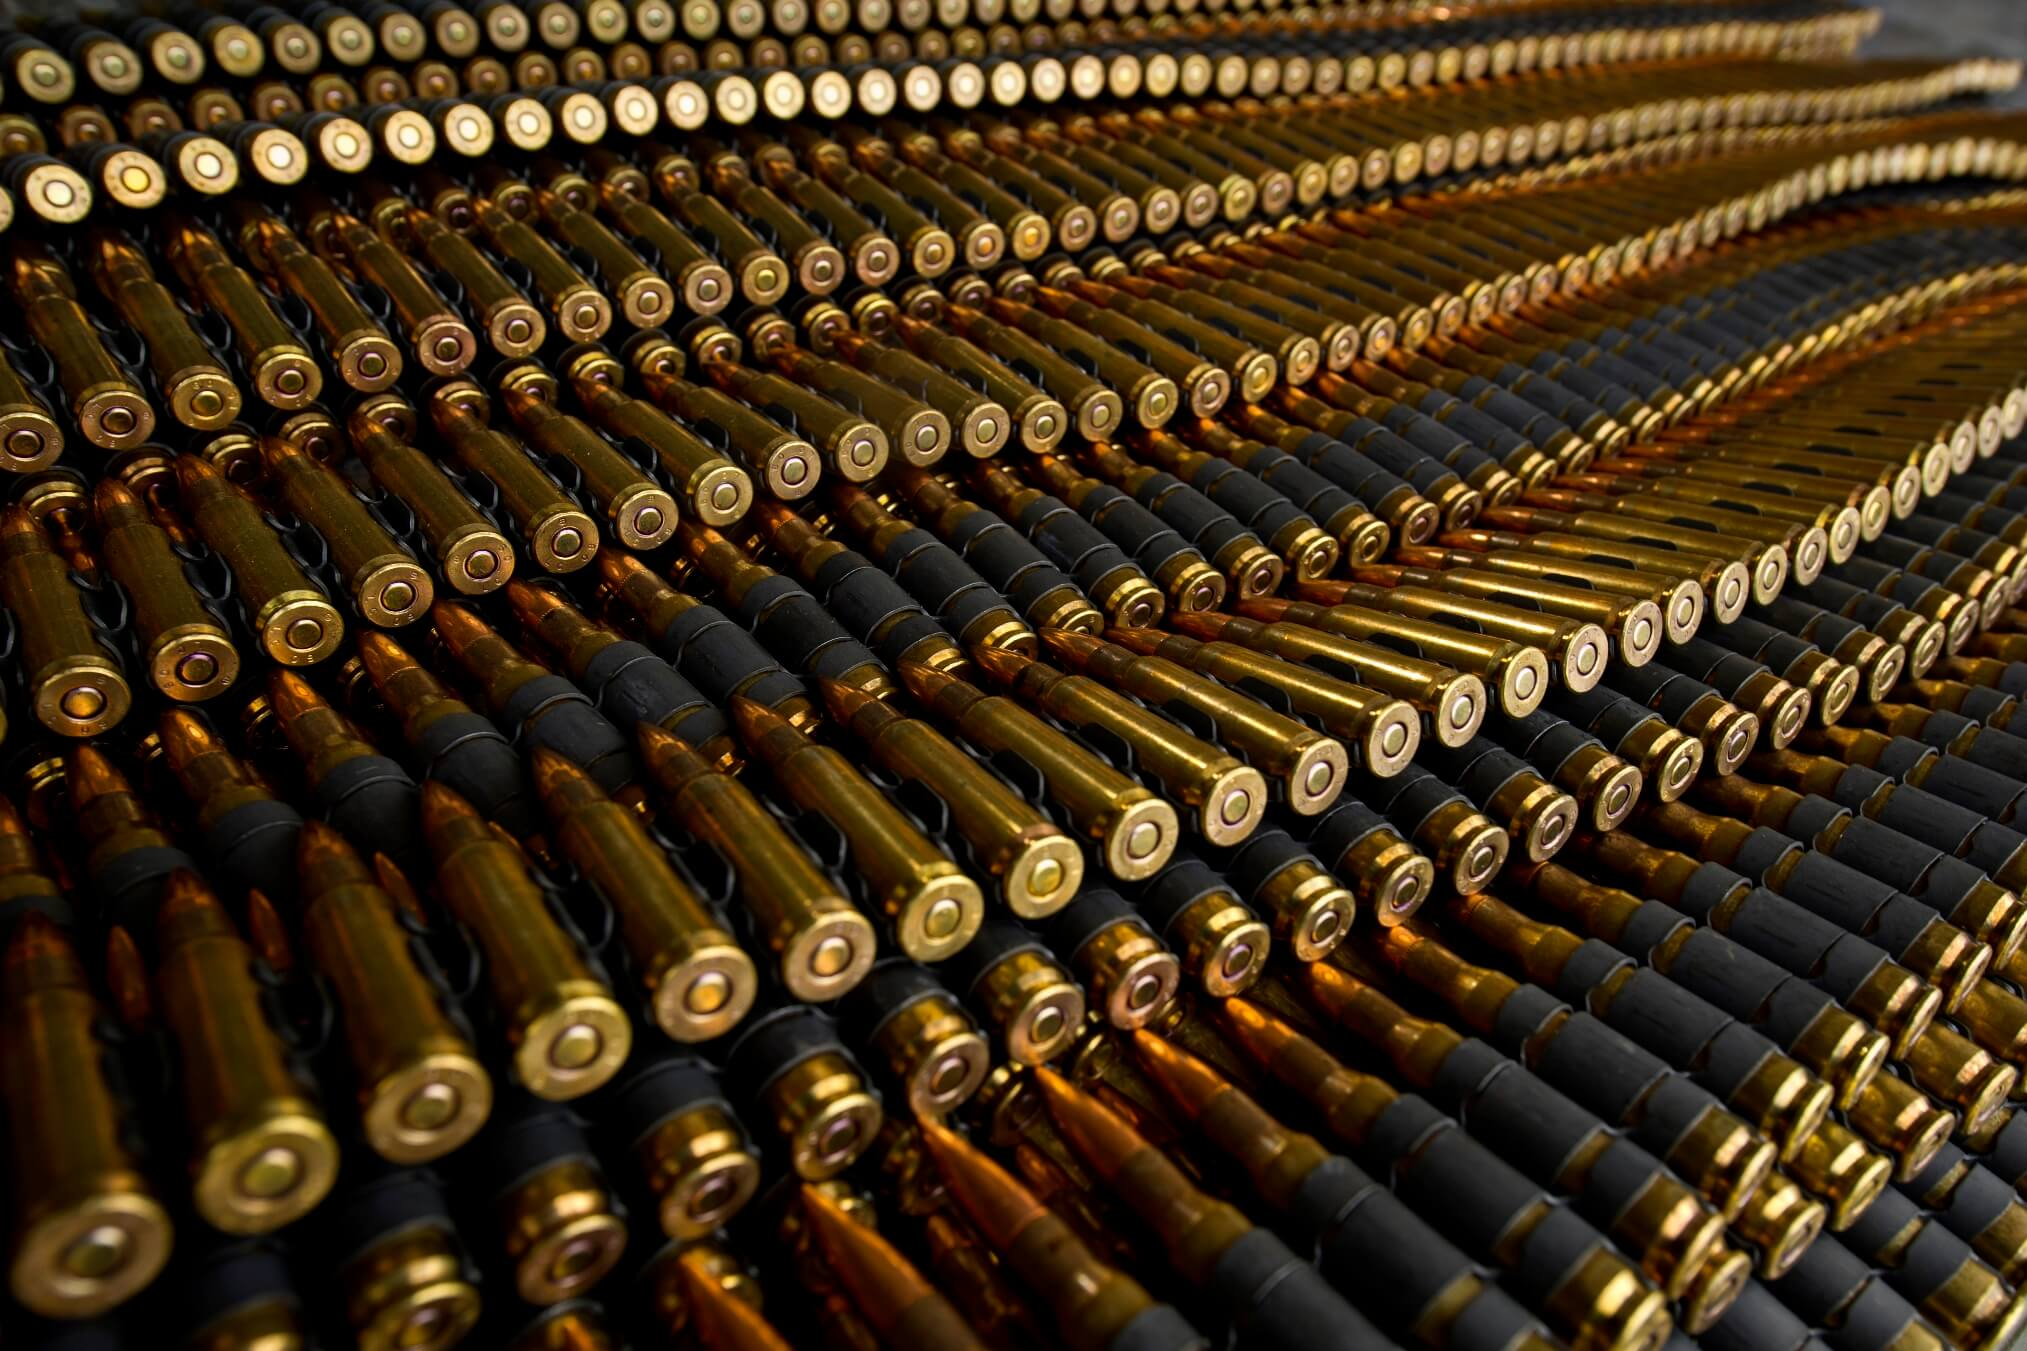 Belts_of_7.62_mm_ammunition